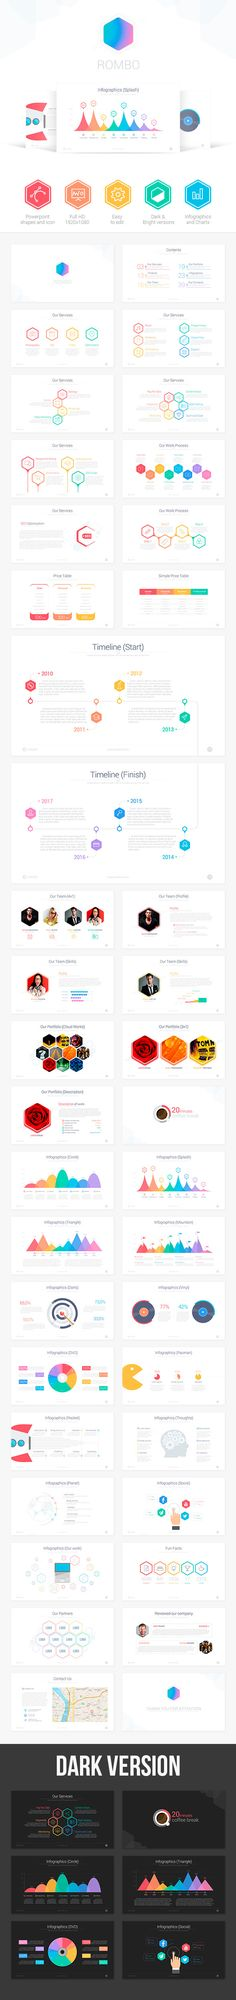 Rombo  Powerpoint Template — Powerpoint PPT #stats #Rombo • Available here → https://graphicriver.net/item/rombo-powerpoint-template/8637622?ref=pxcr